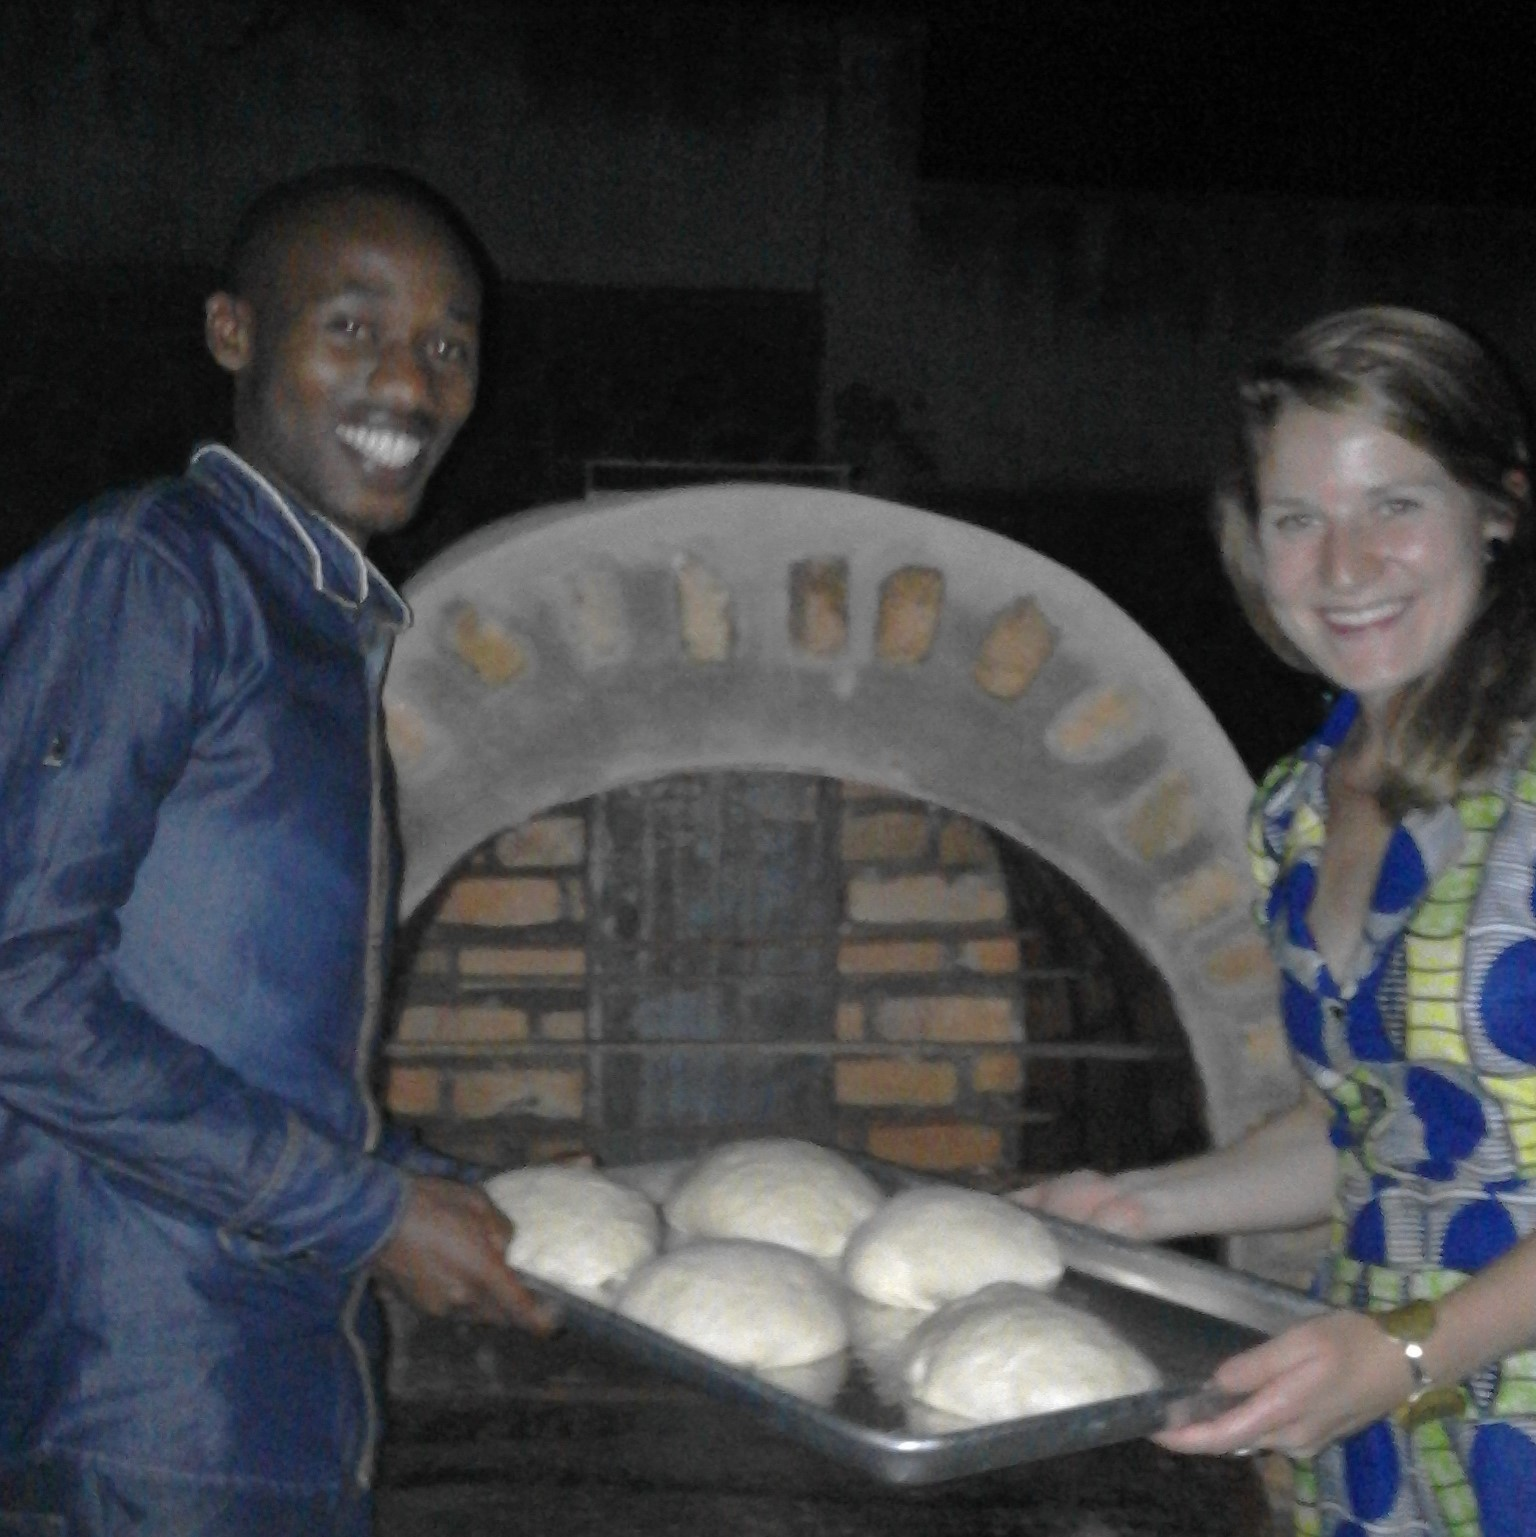 JP, one of the MASS architects for the project, and Meg, East Africa Programs Officer place some TWB loaves in the oven for baking tests! TWB is thrilled at the prospect of a prototype design for the organization and the future of ovens in our bakeries.